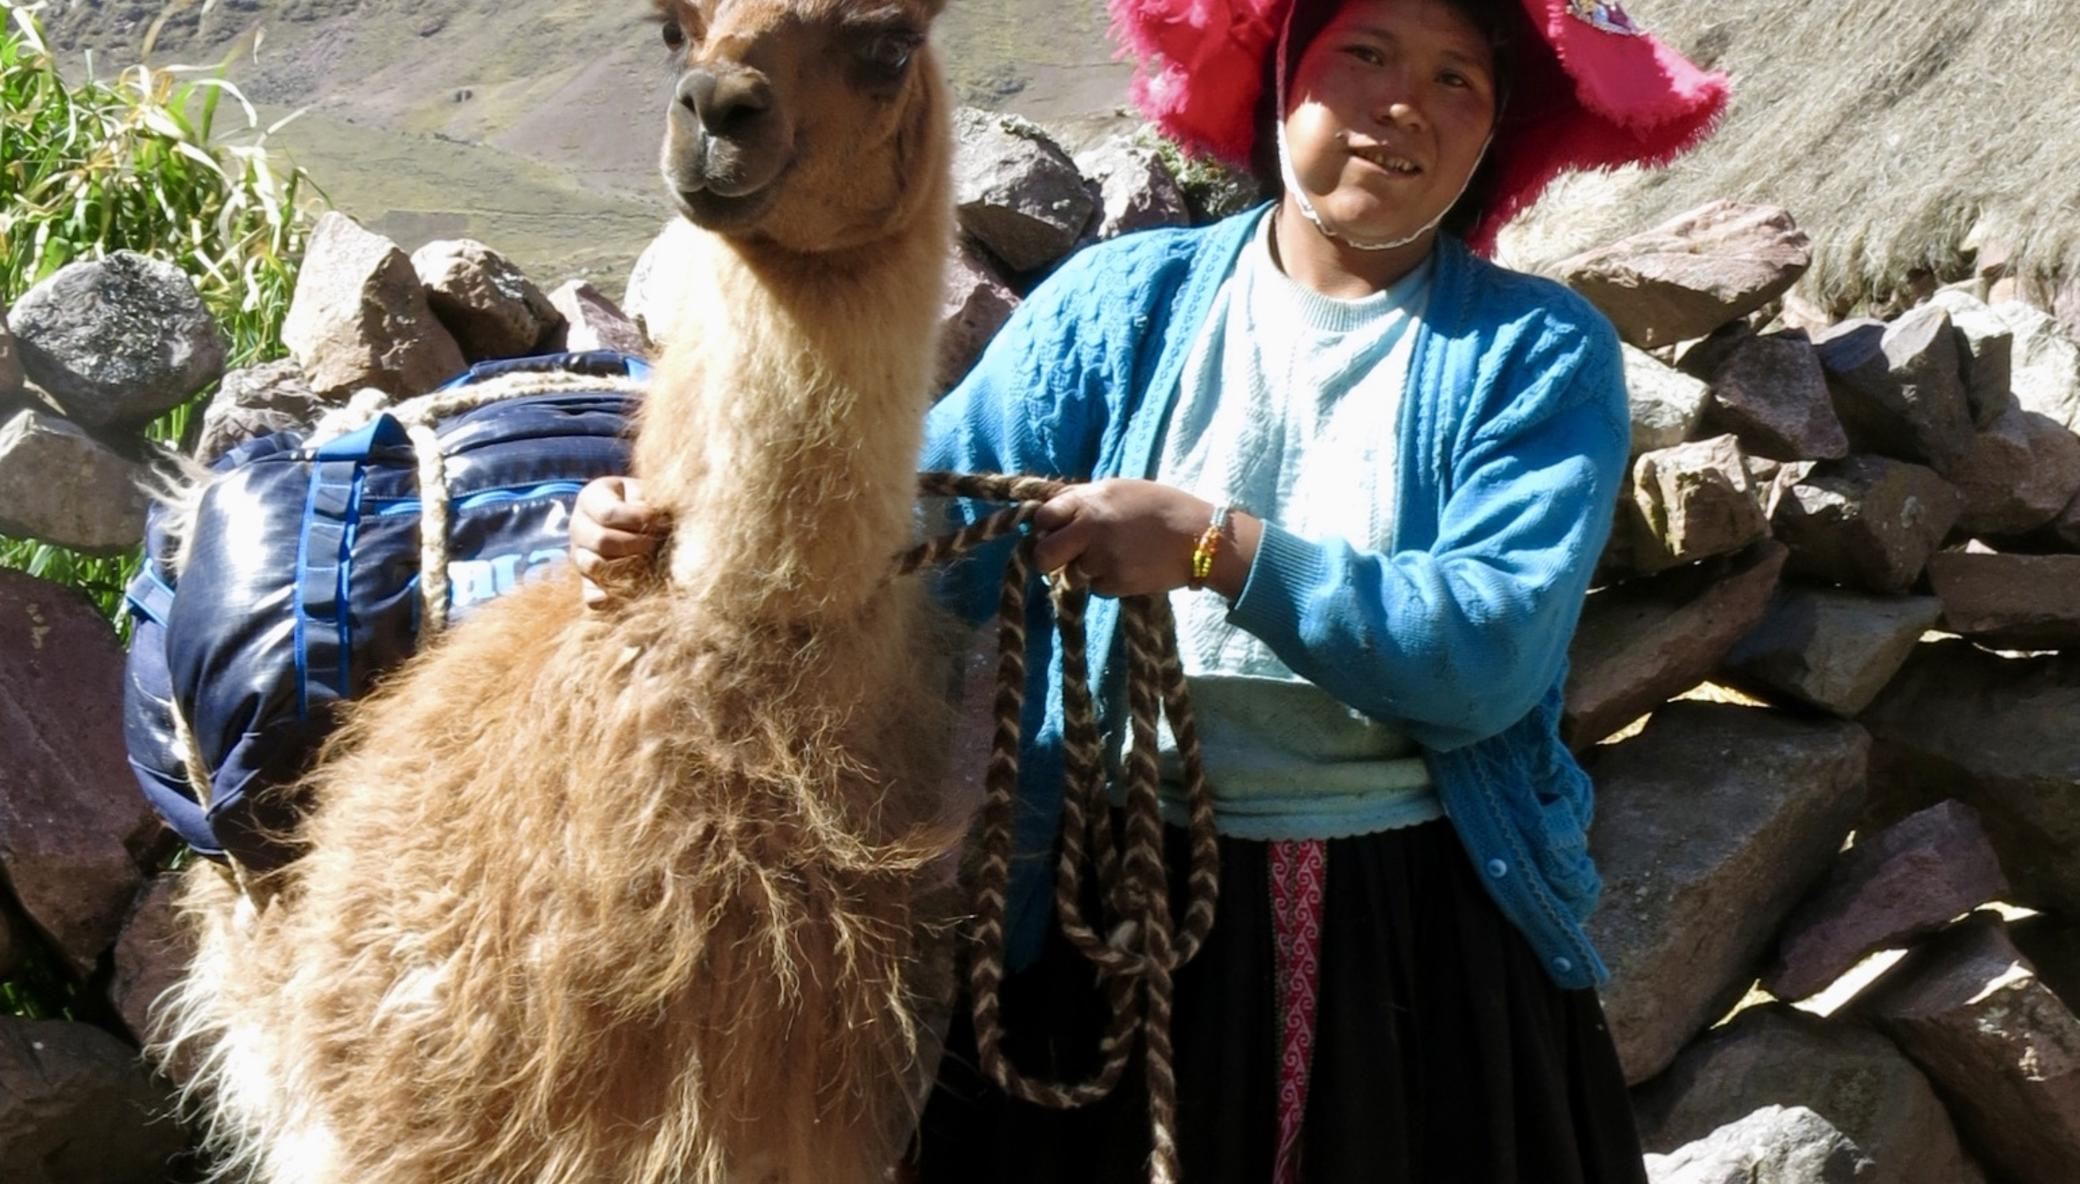 Help 85+ llama farmers in Peru access fair work